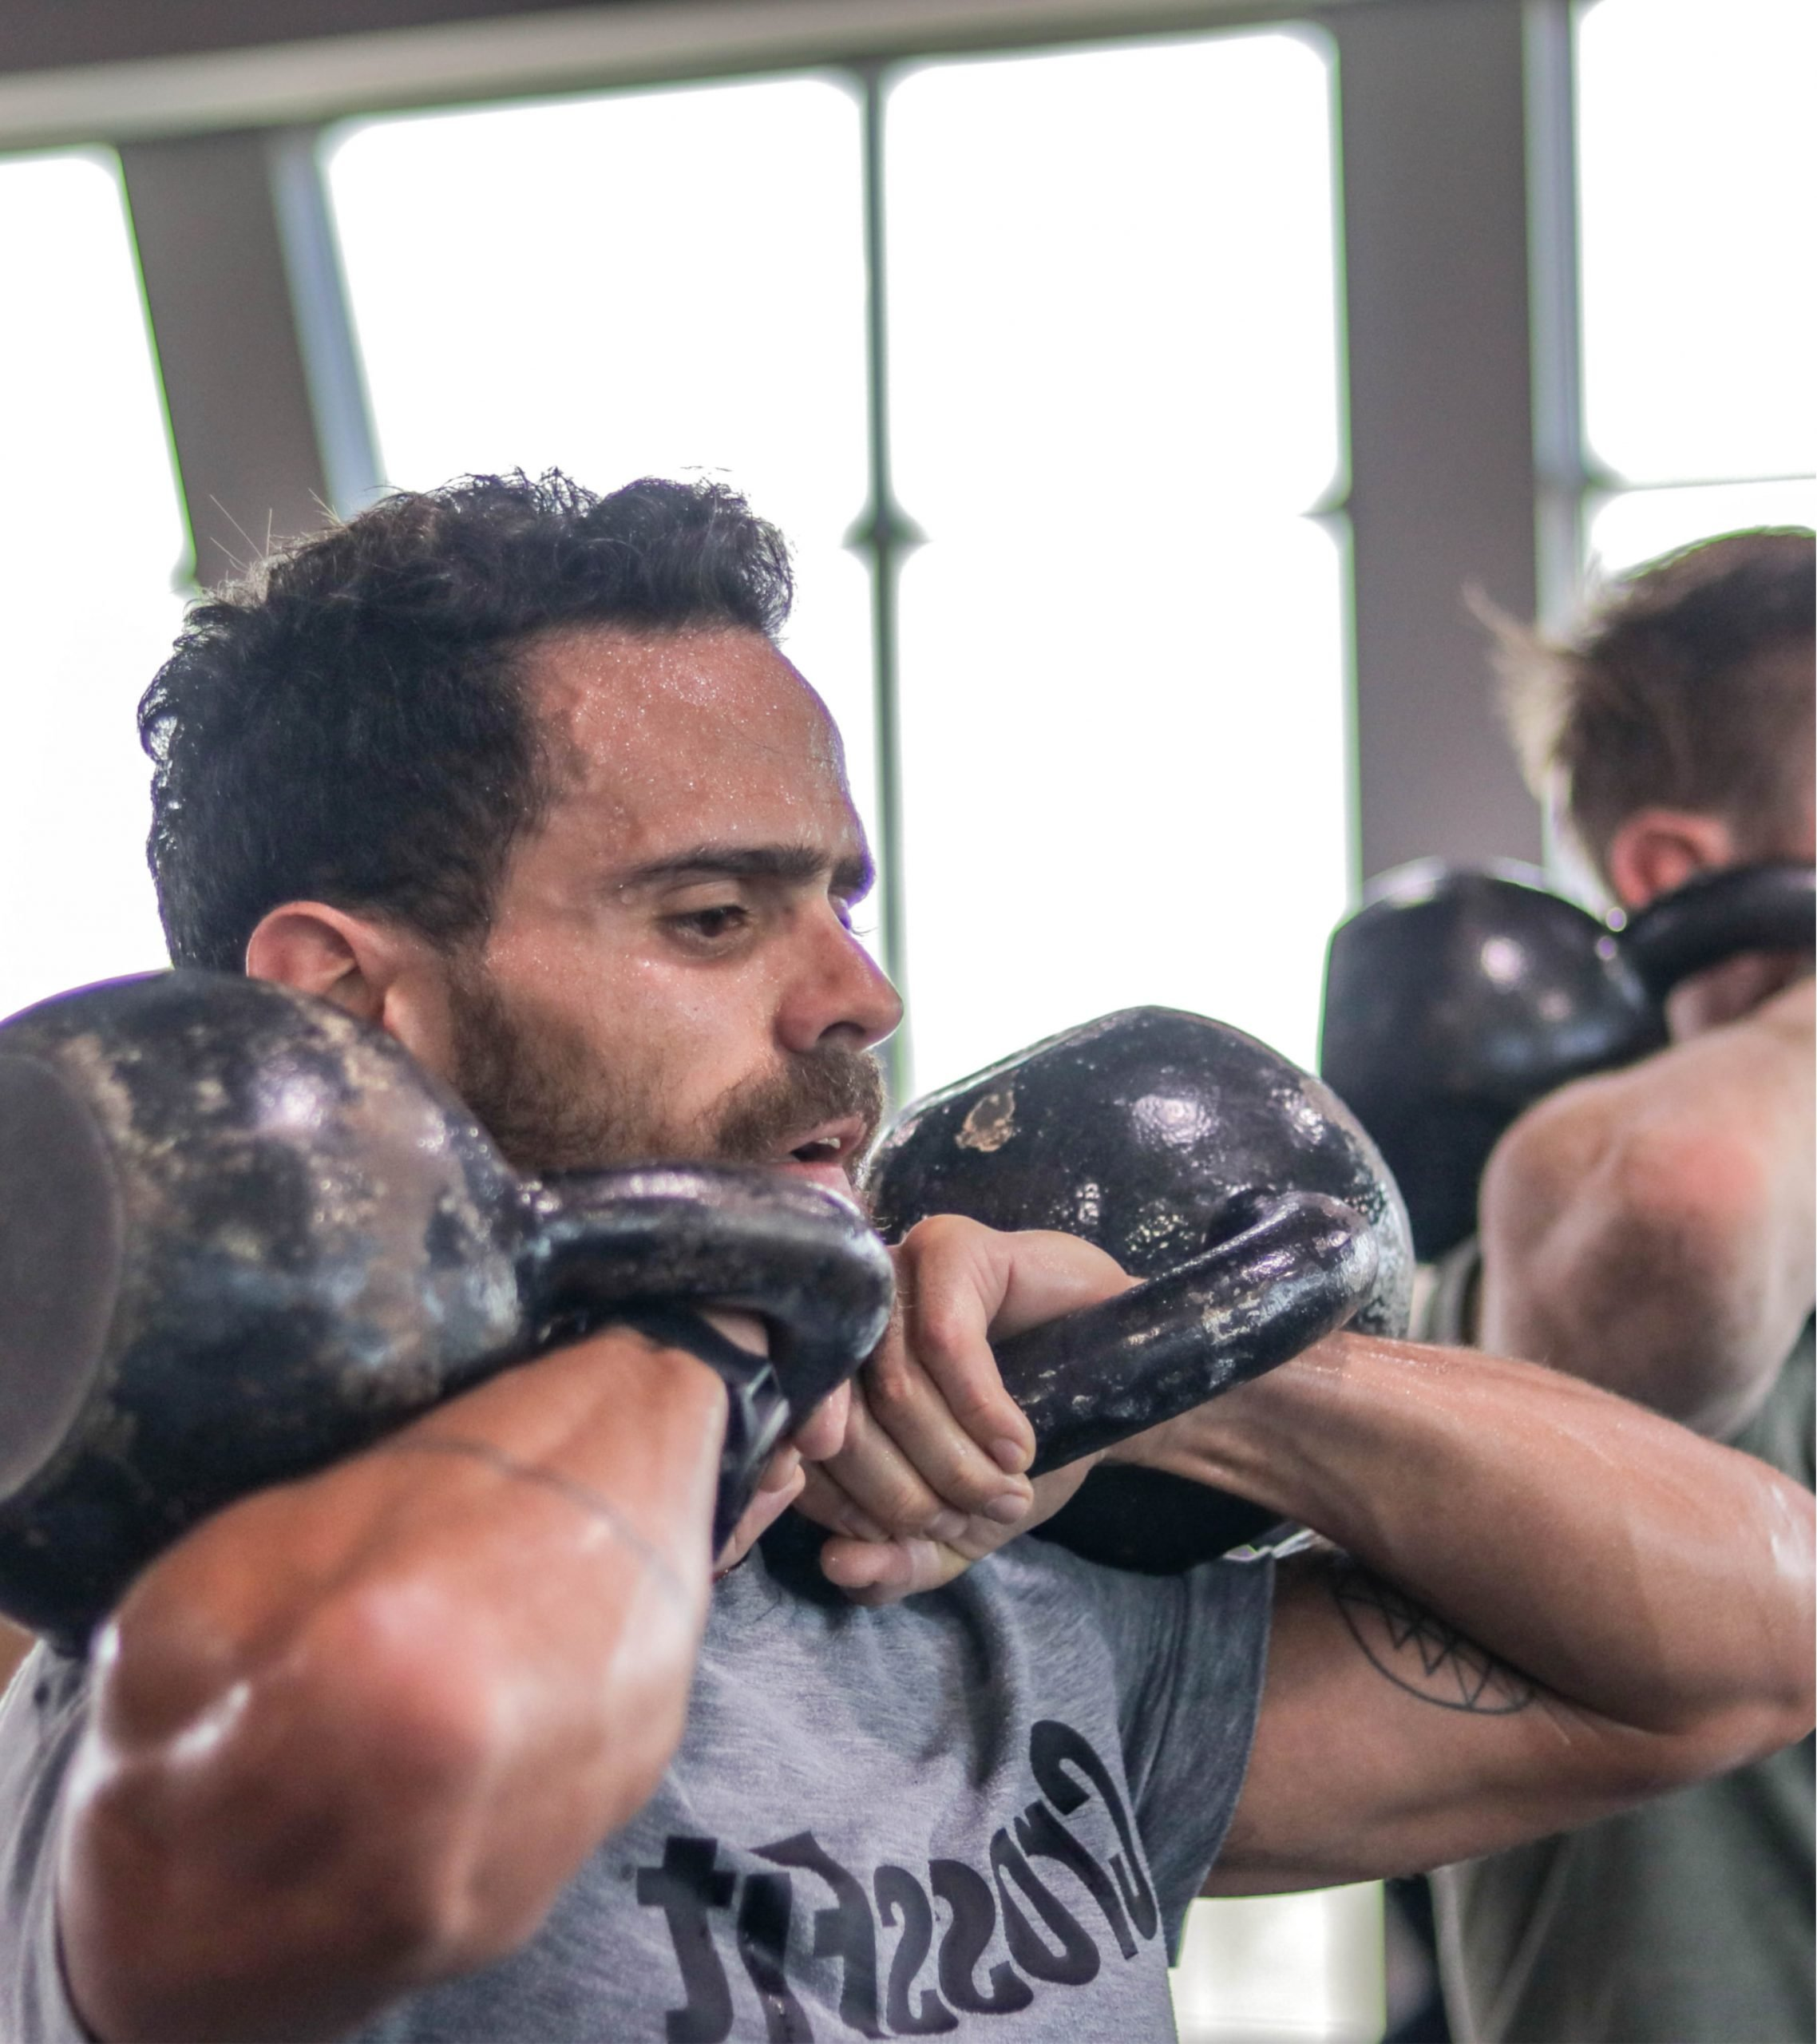 Man Holding two Kettlebells front-hold